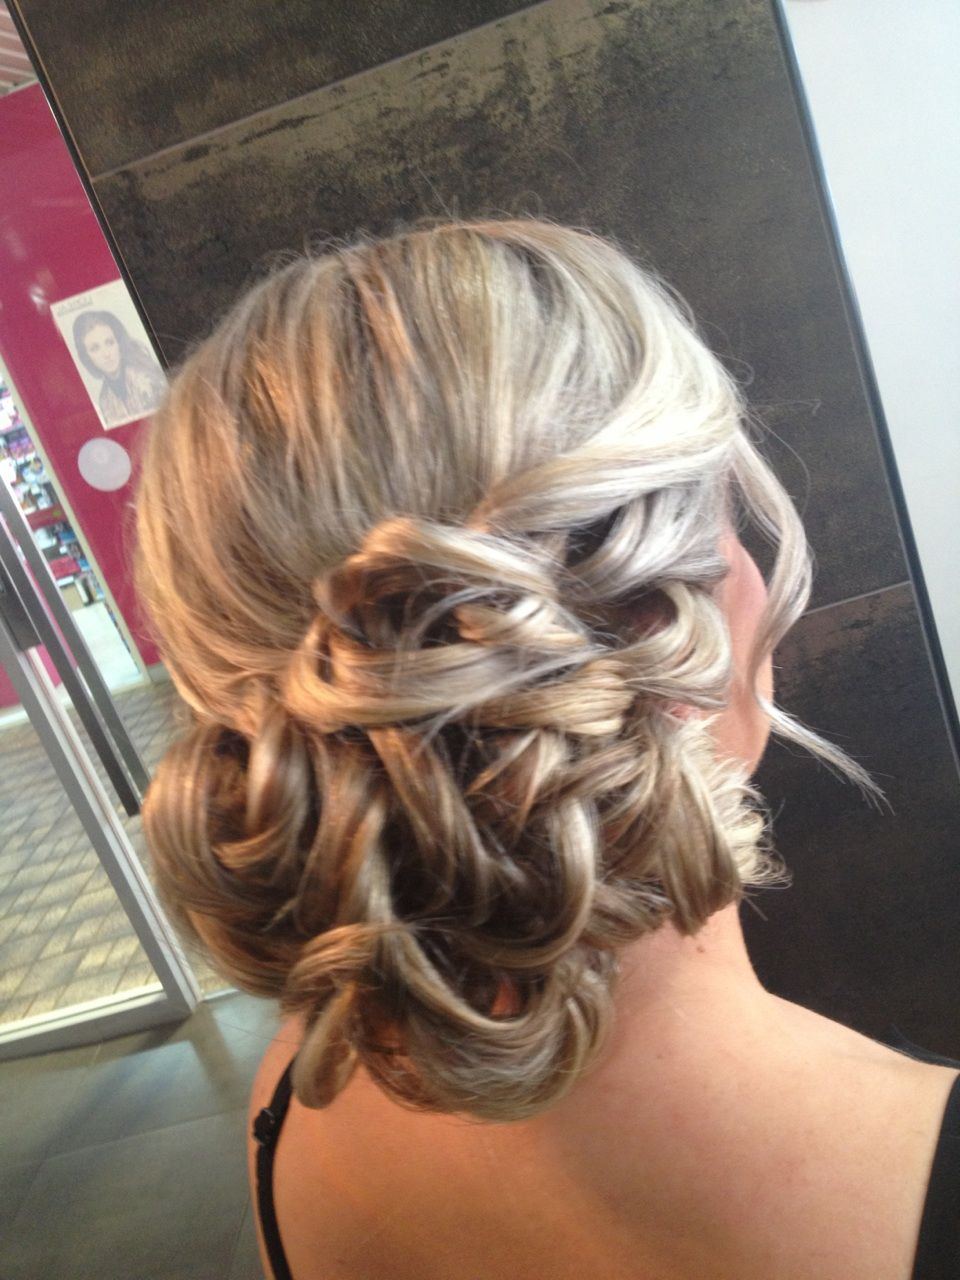 Forum on this topic: Winter Formal Hairstyles, winter-formal-hairstyles/